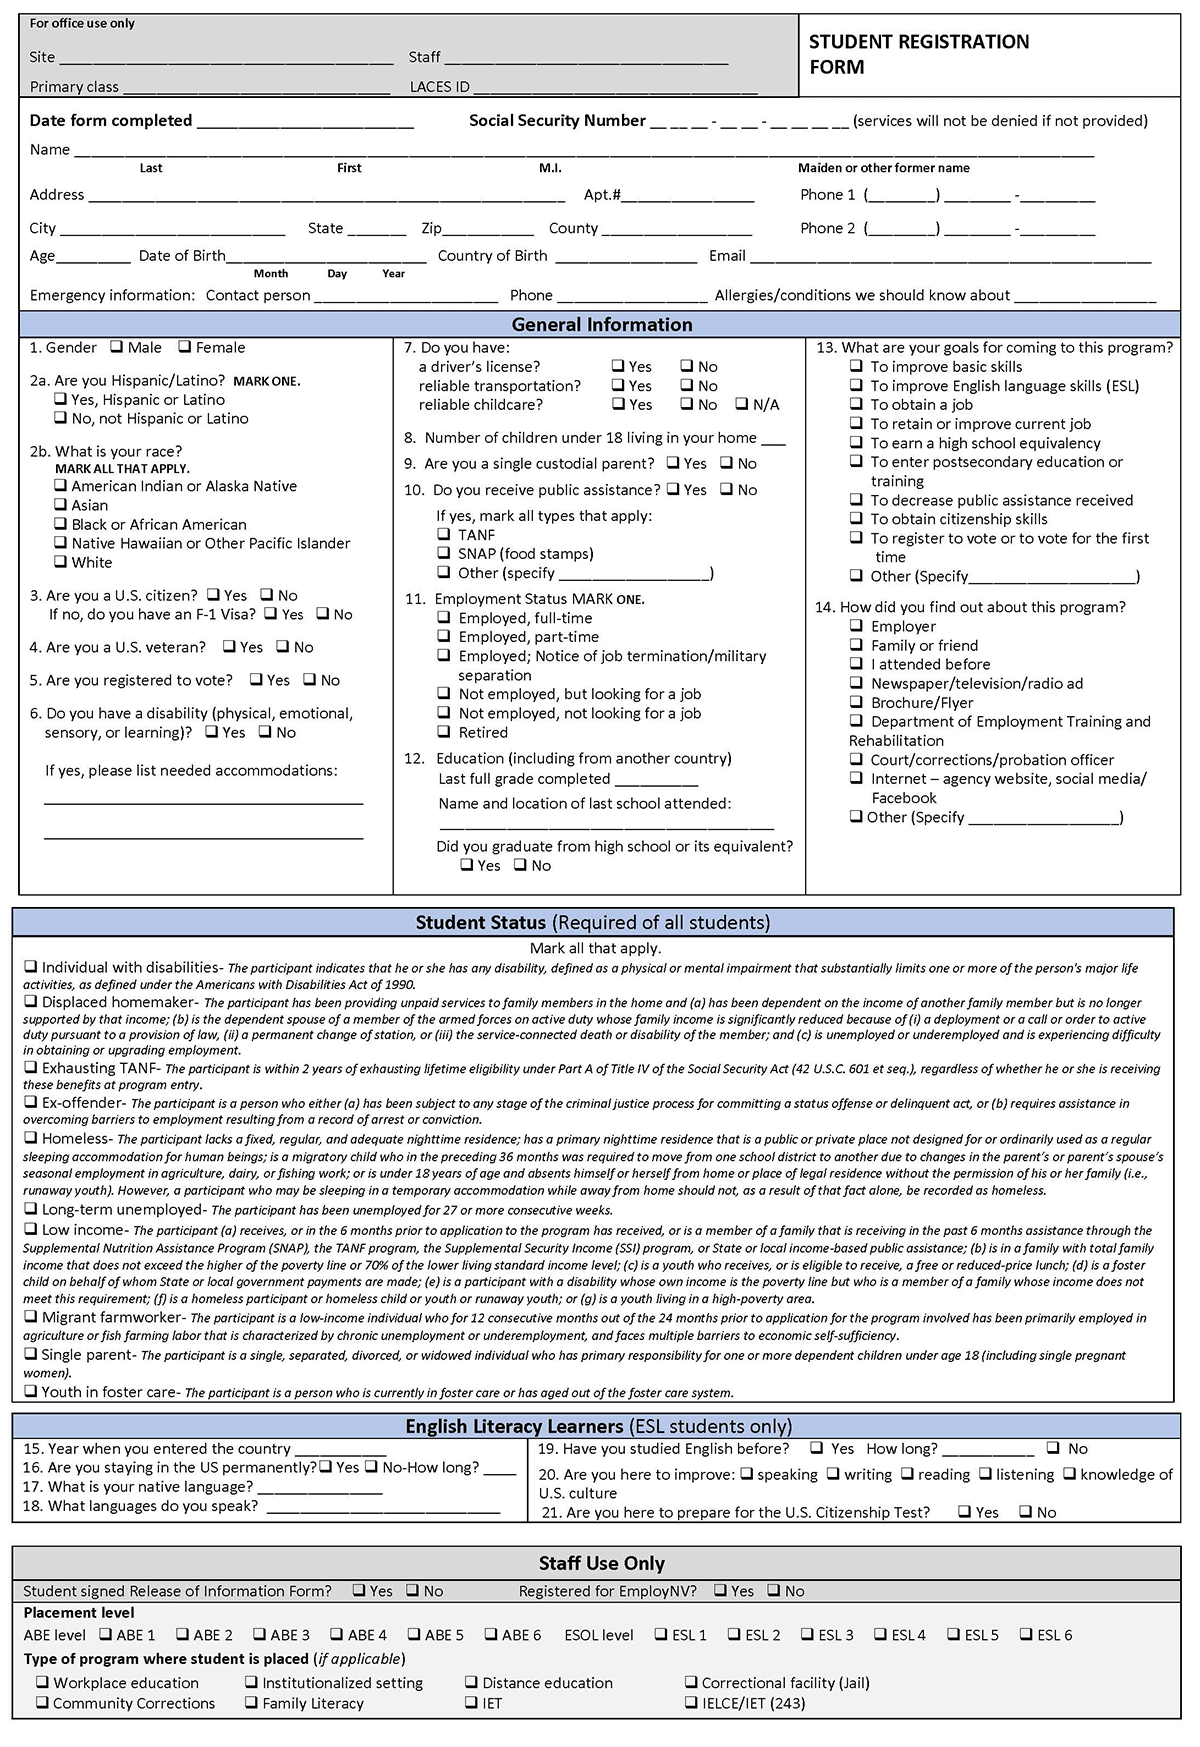 Sample Student Registration Form. Includes student information and demographics, Barriers to Employment descriptions, ESL section and Staff only section